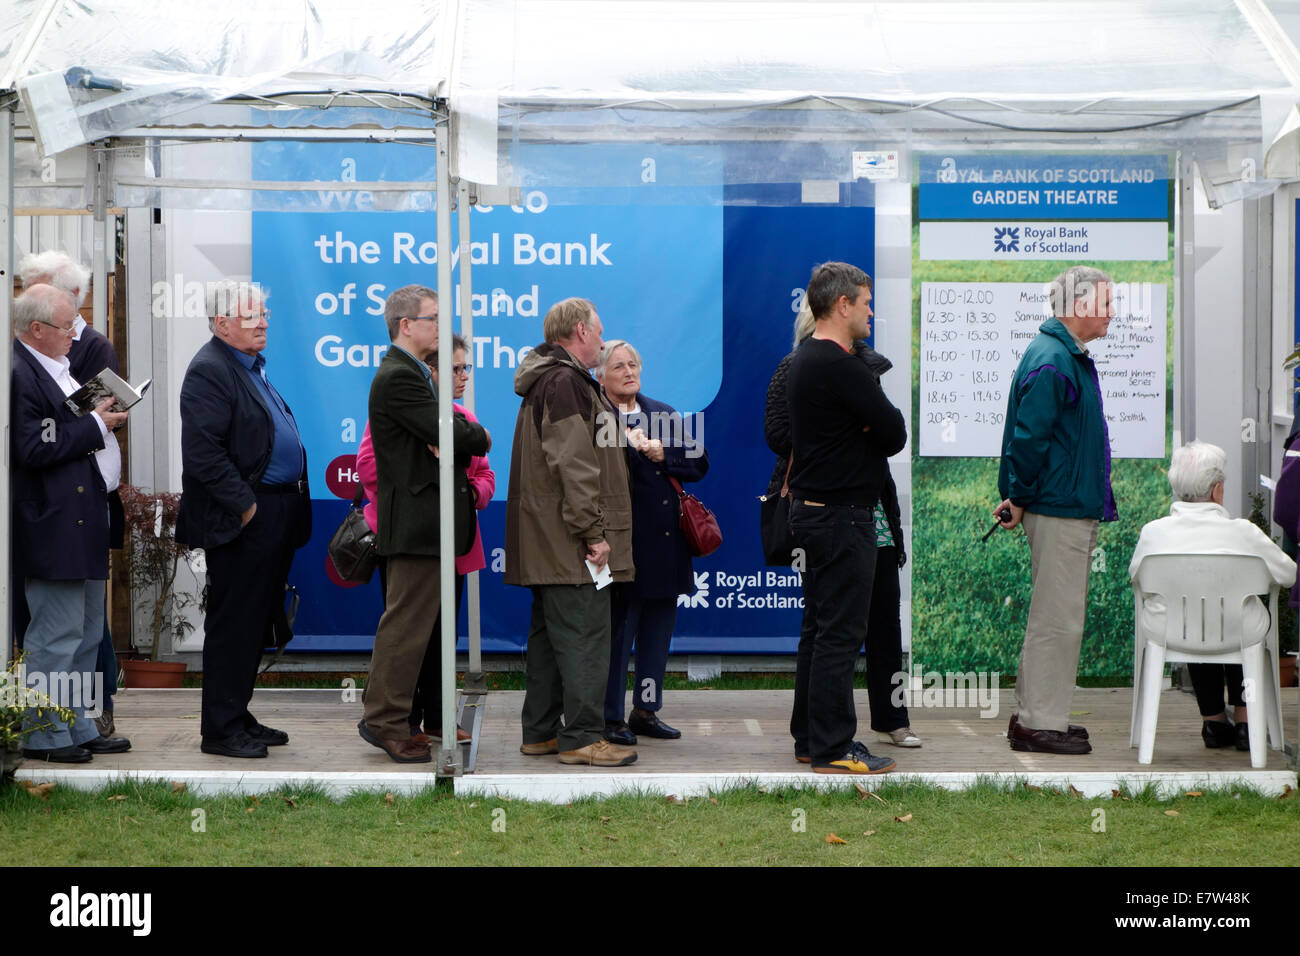 People queueing for an event at the Edinburgh International Book Festival Stock Photo